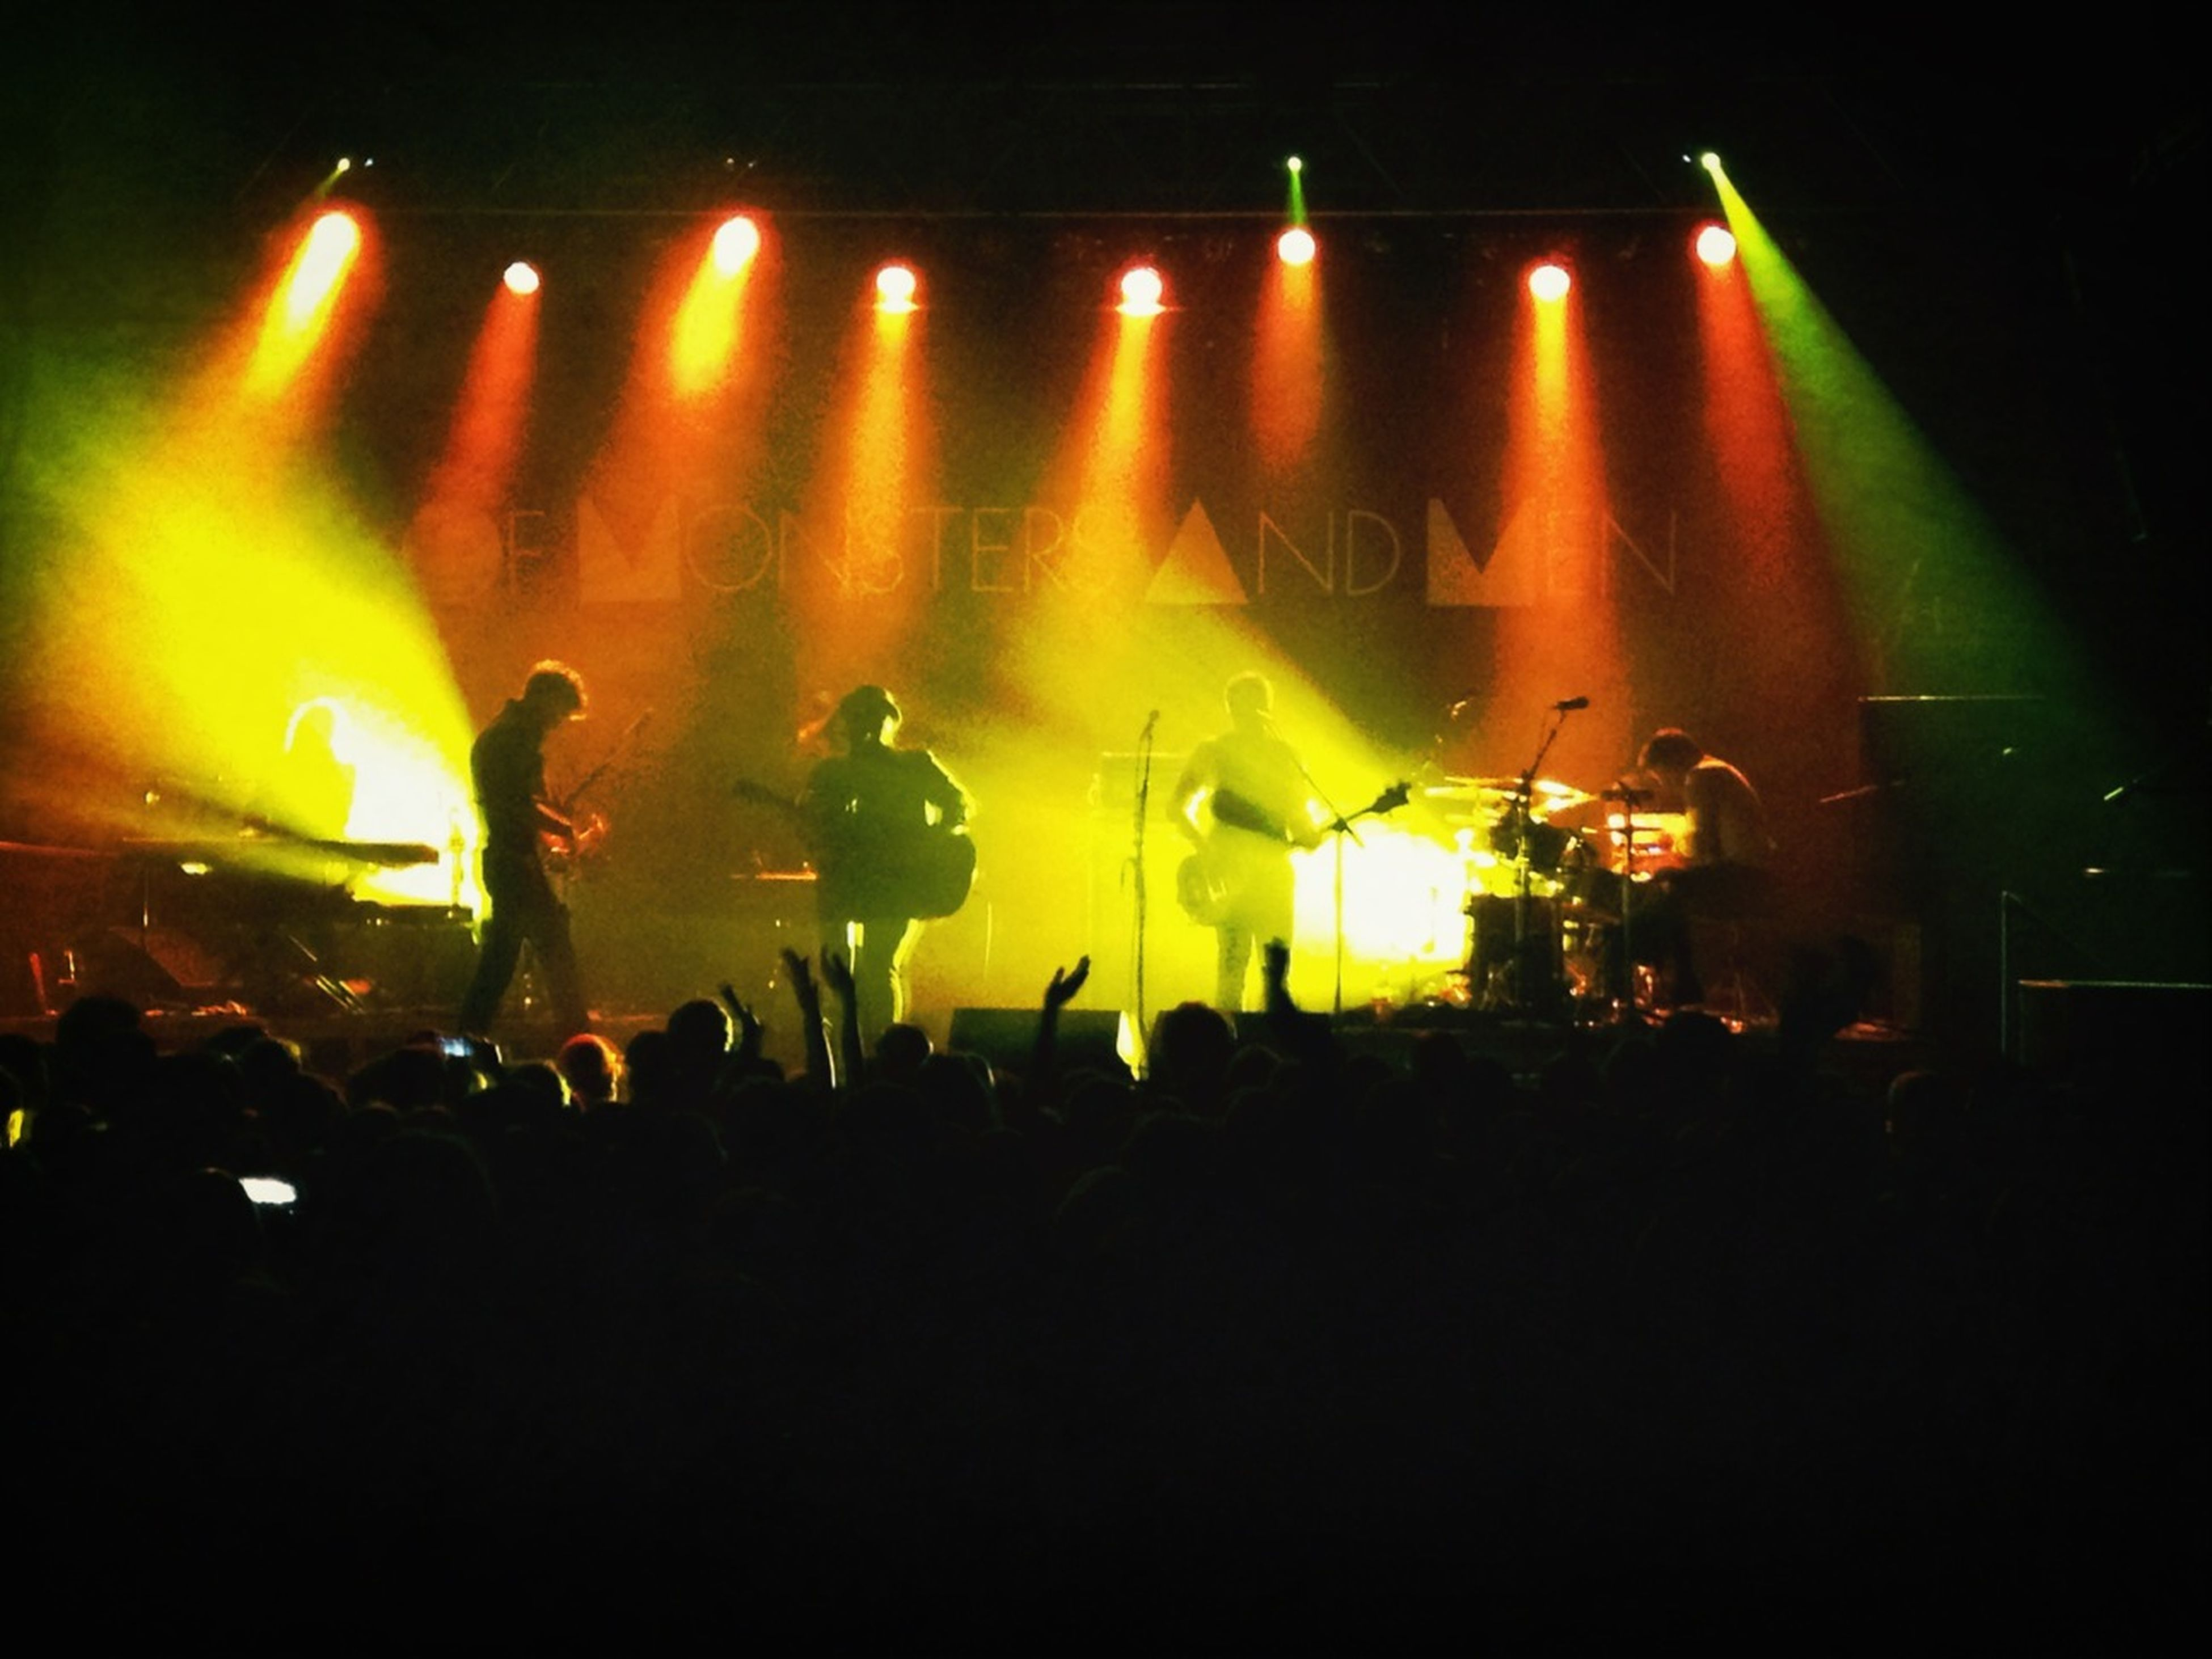 Of Monsters and Men @ First Ave last night with D and made two new friends! Awesome night!